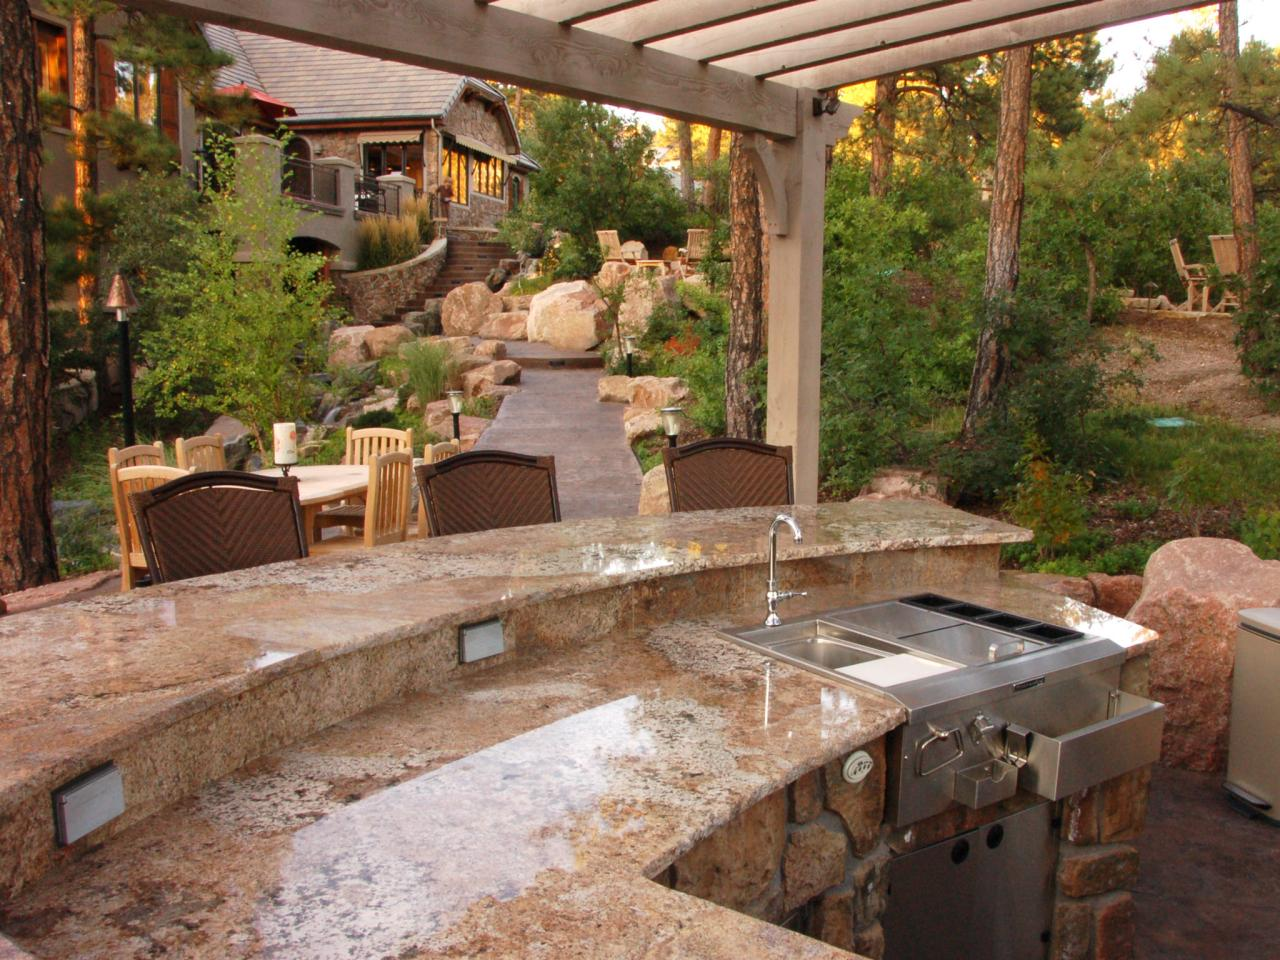 Outdoor Kitchen Ideas on a Budget: Pictures, Tips & Ideas ...